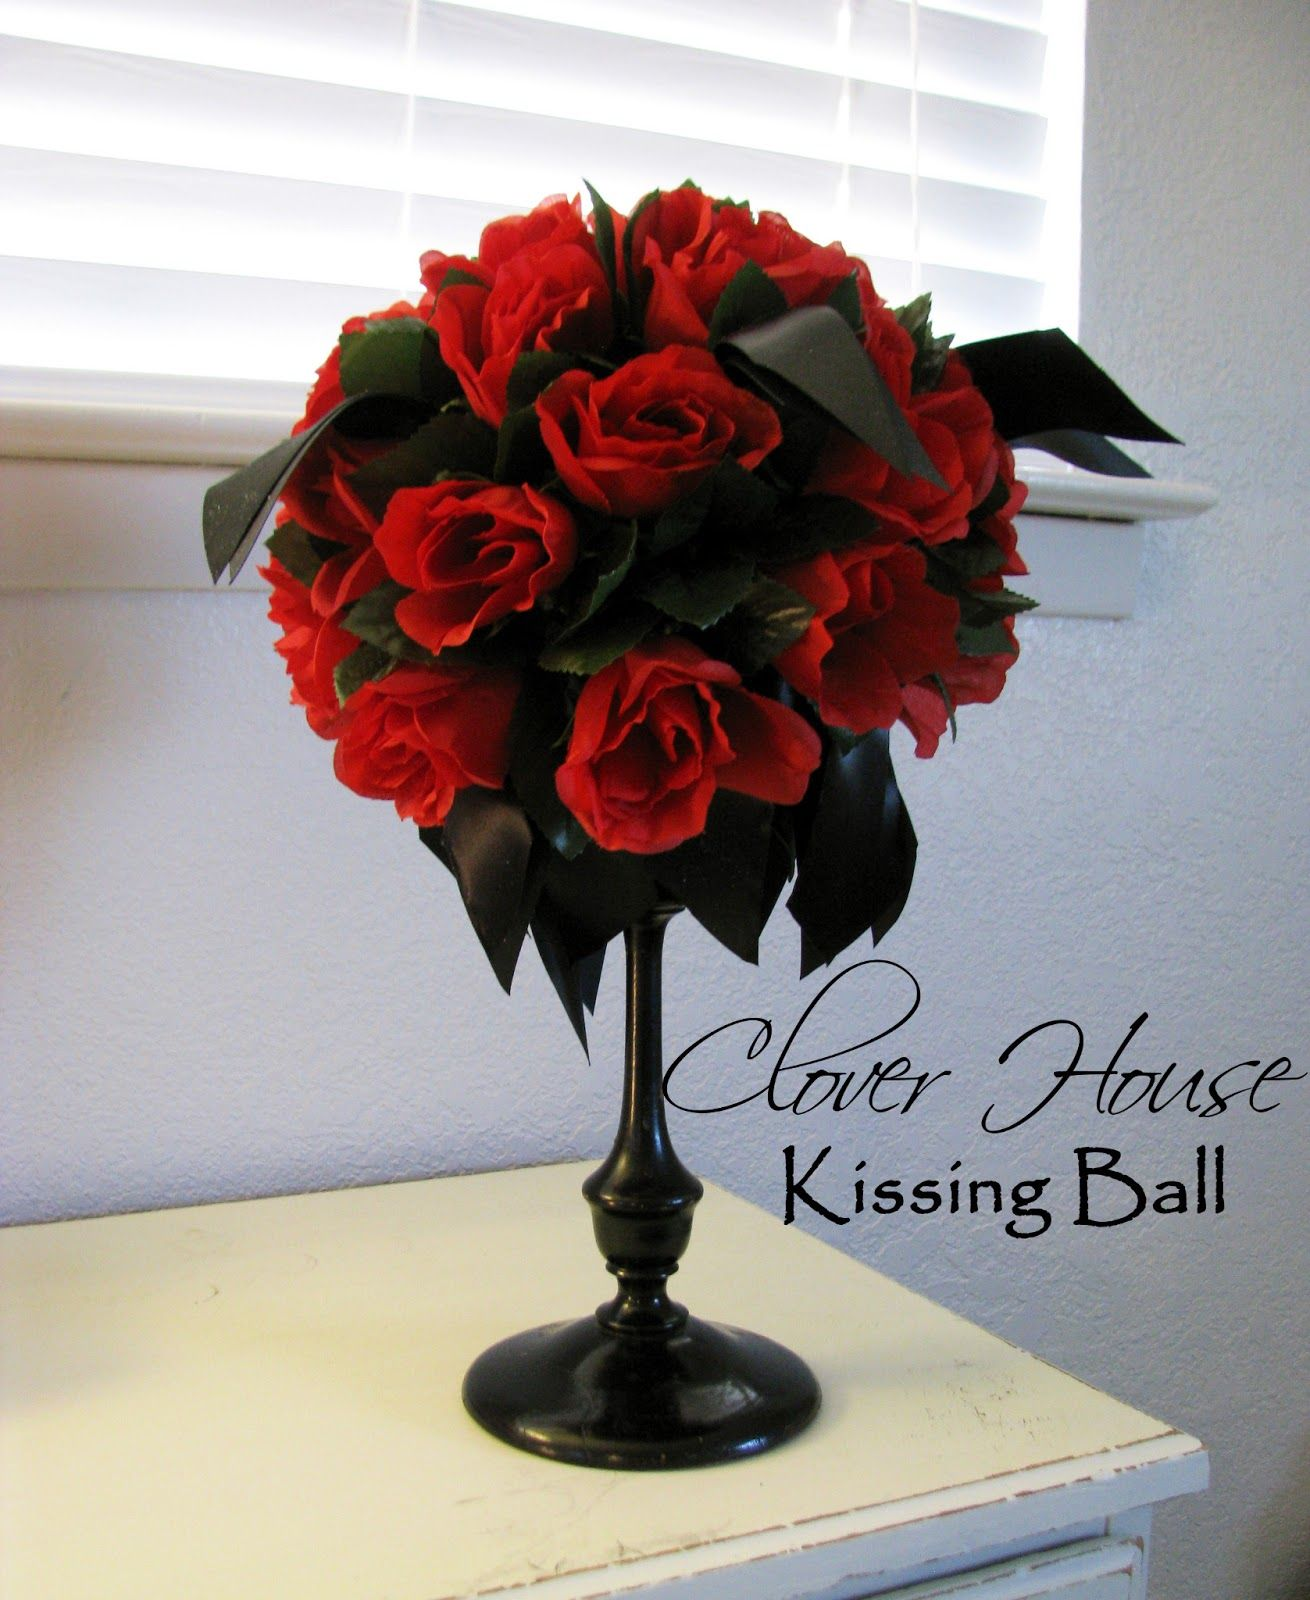 Clover House: Pretty Rose Kissing Ball